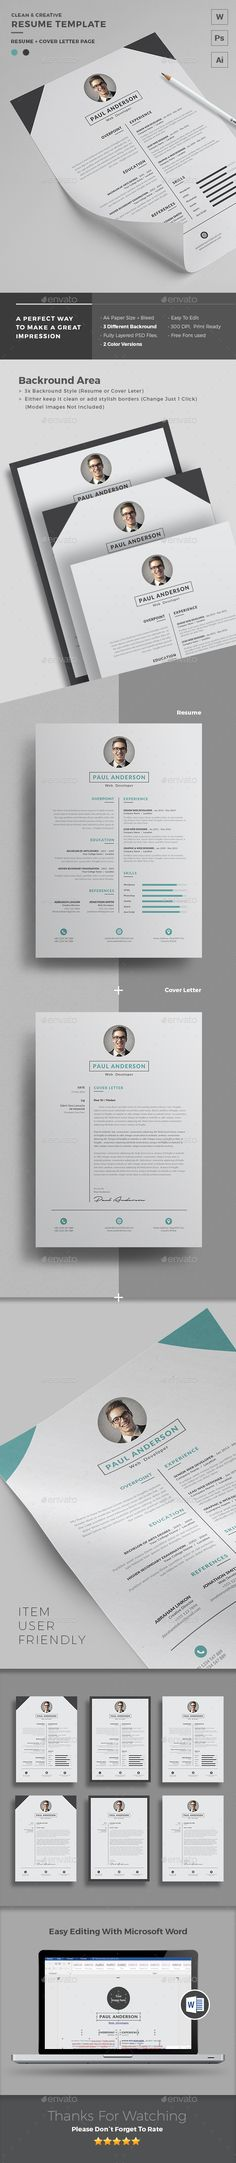 Resume Template no 6 \/\/ Instant Download \/\/ Creative \/\/ Microsoft - resume microsoft